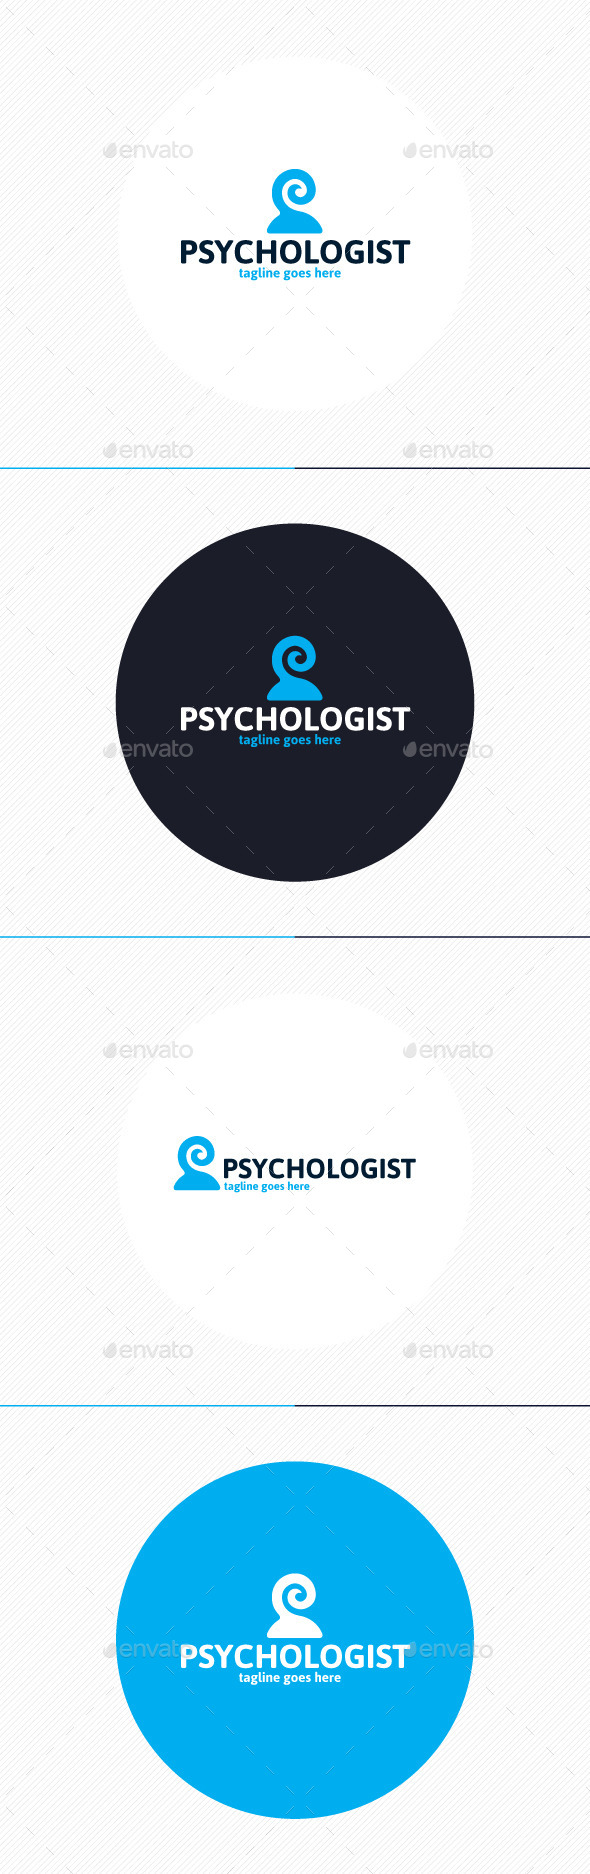 GraphicRiver Psychologist Logo 9860899